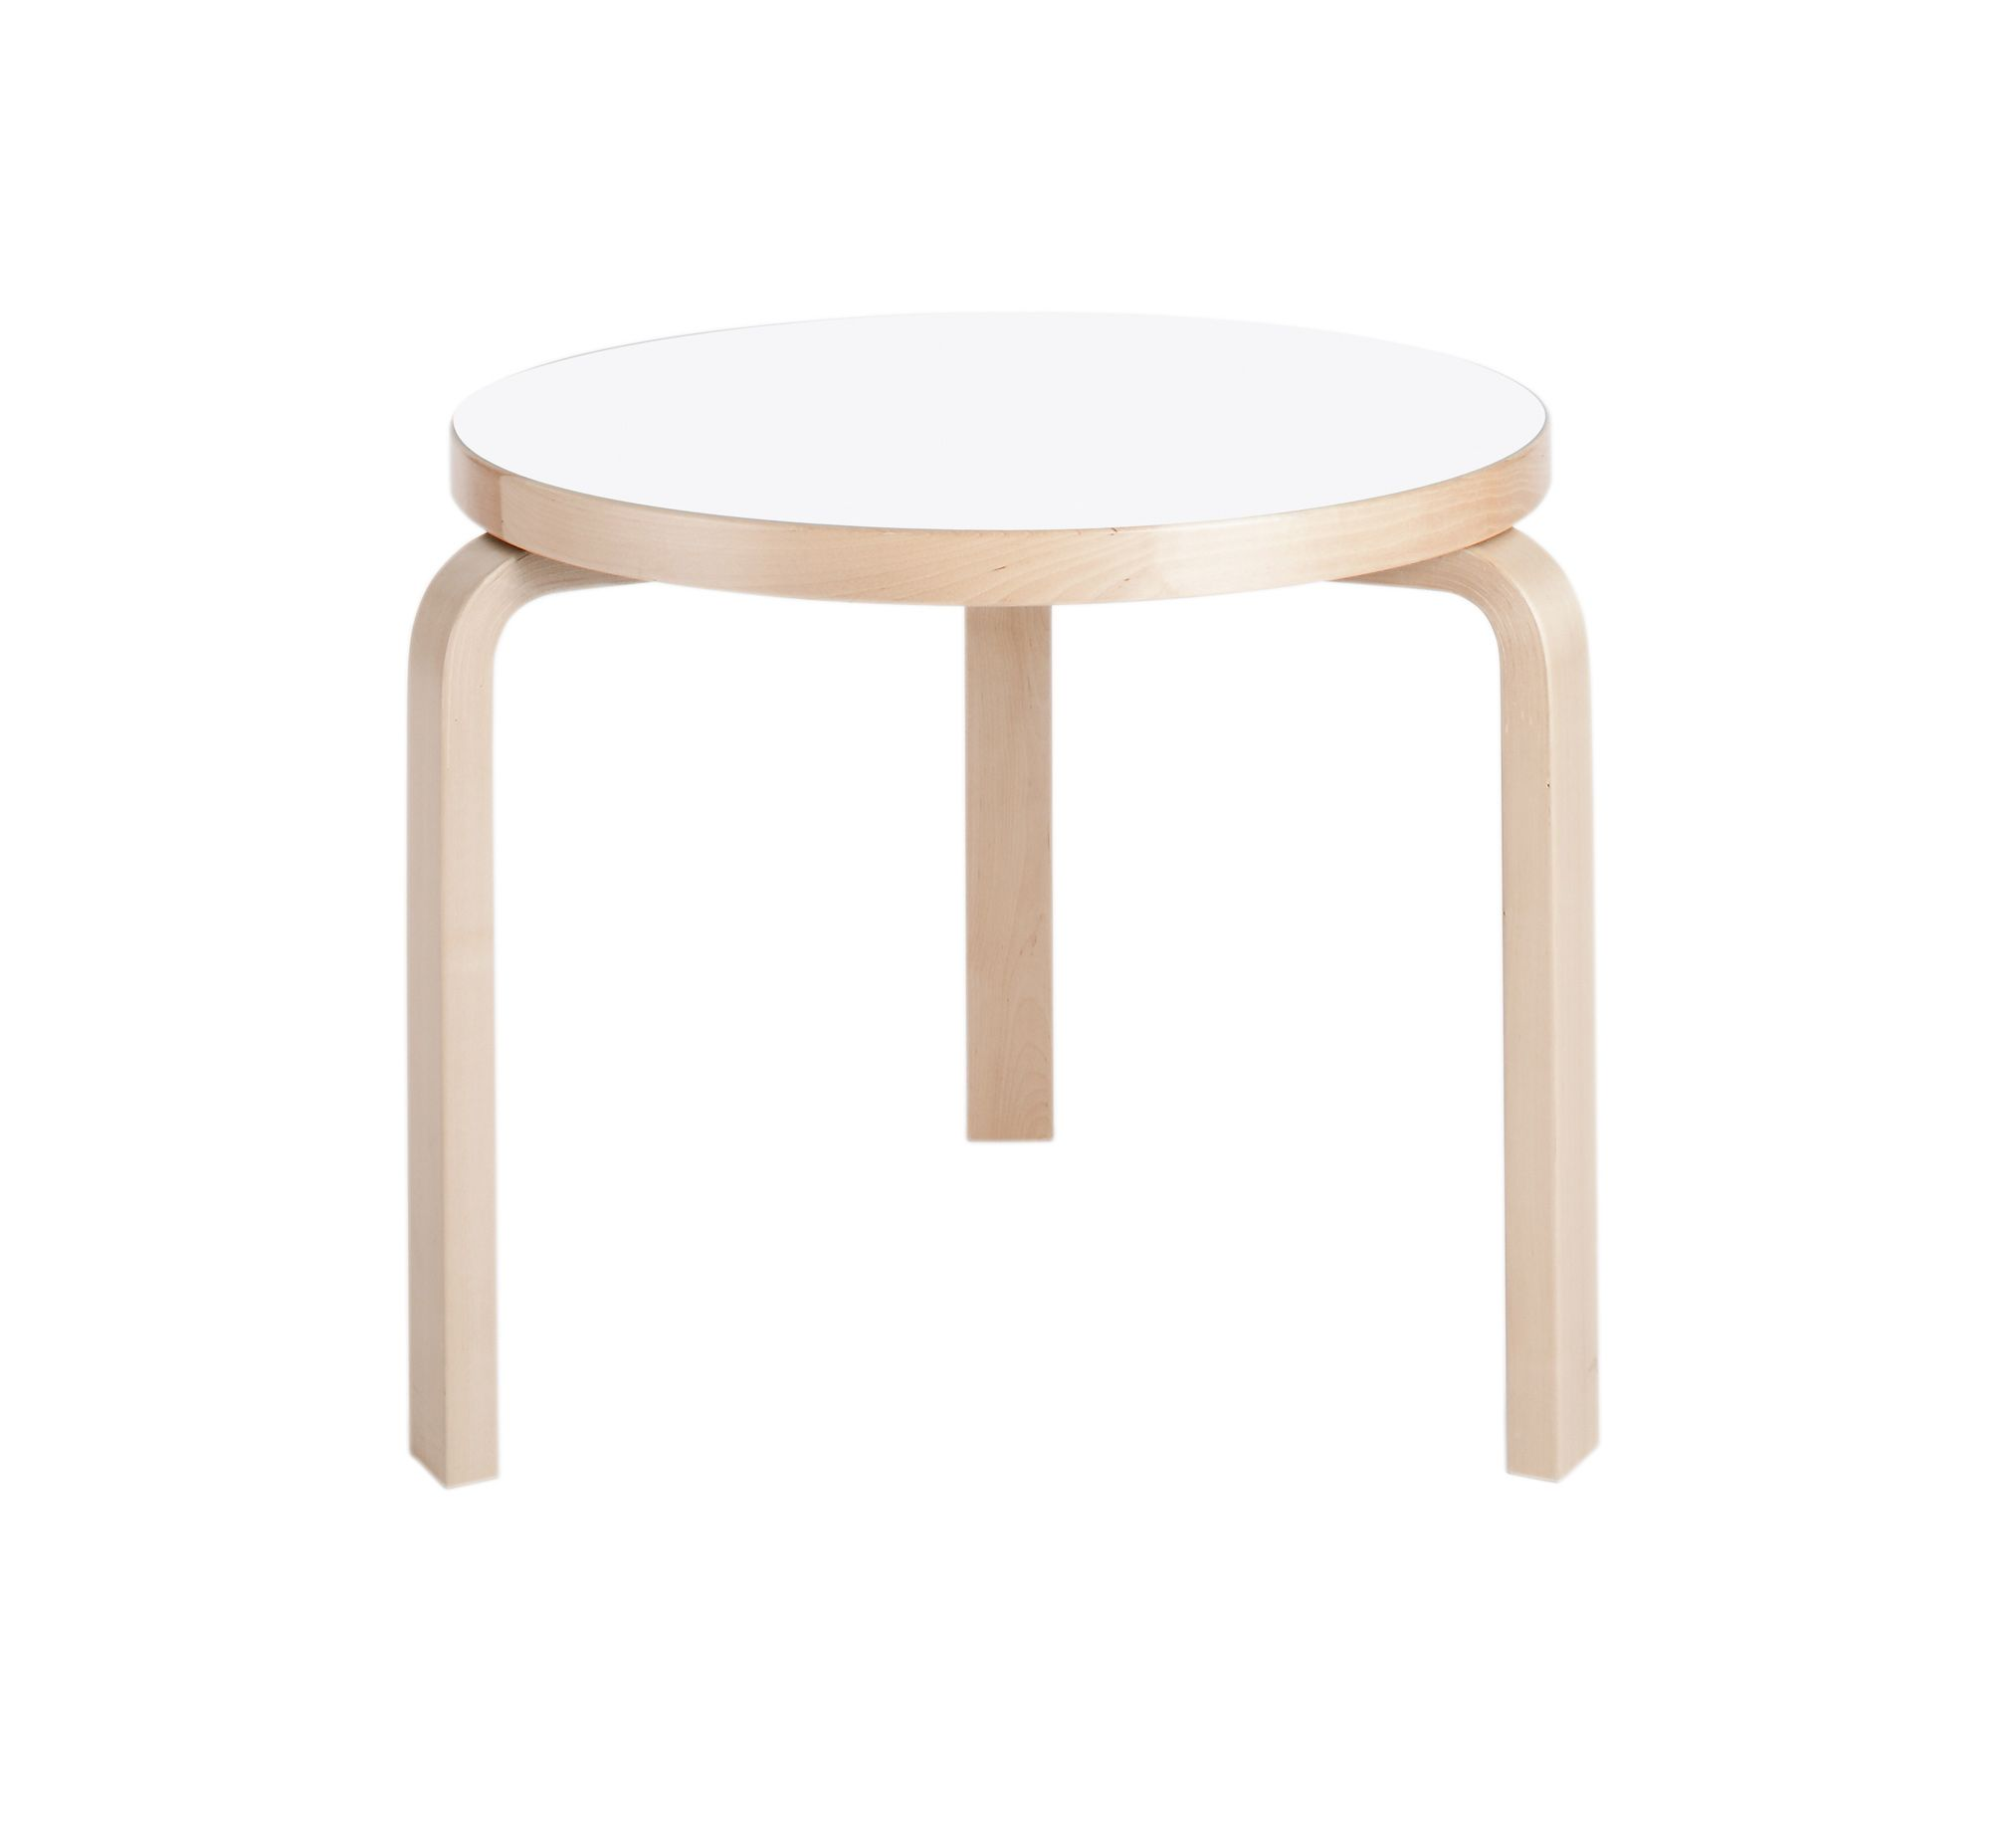 alvar aalto – c table – artek furniture  artek usa  for   - alvar aalto – c table – artek furniture  artek usa